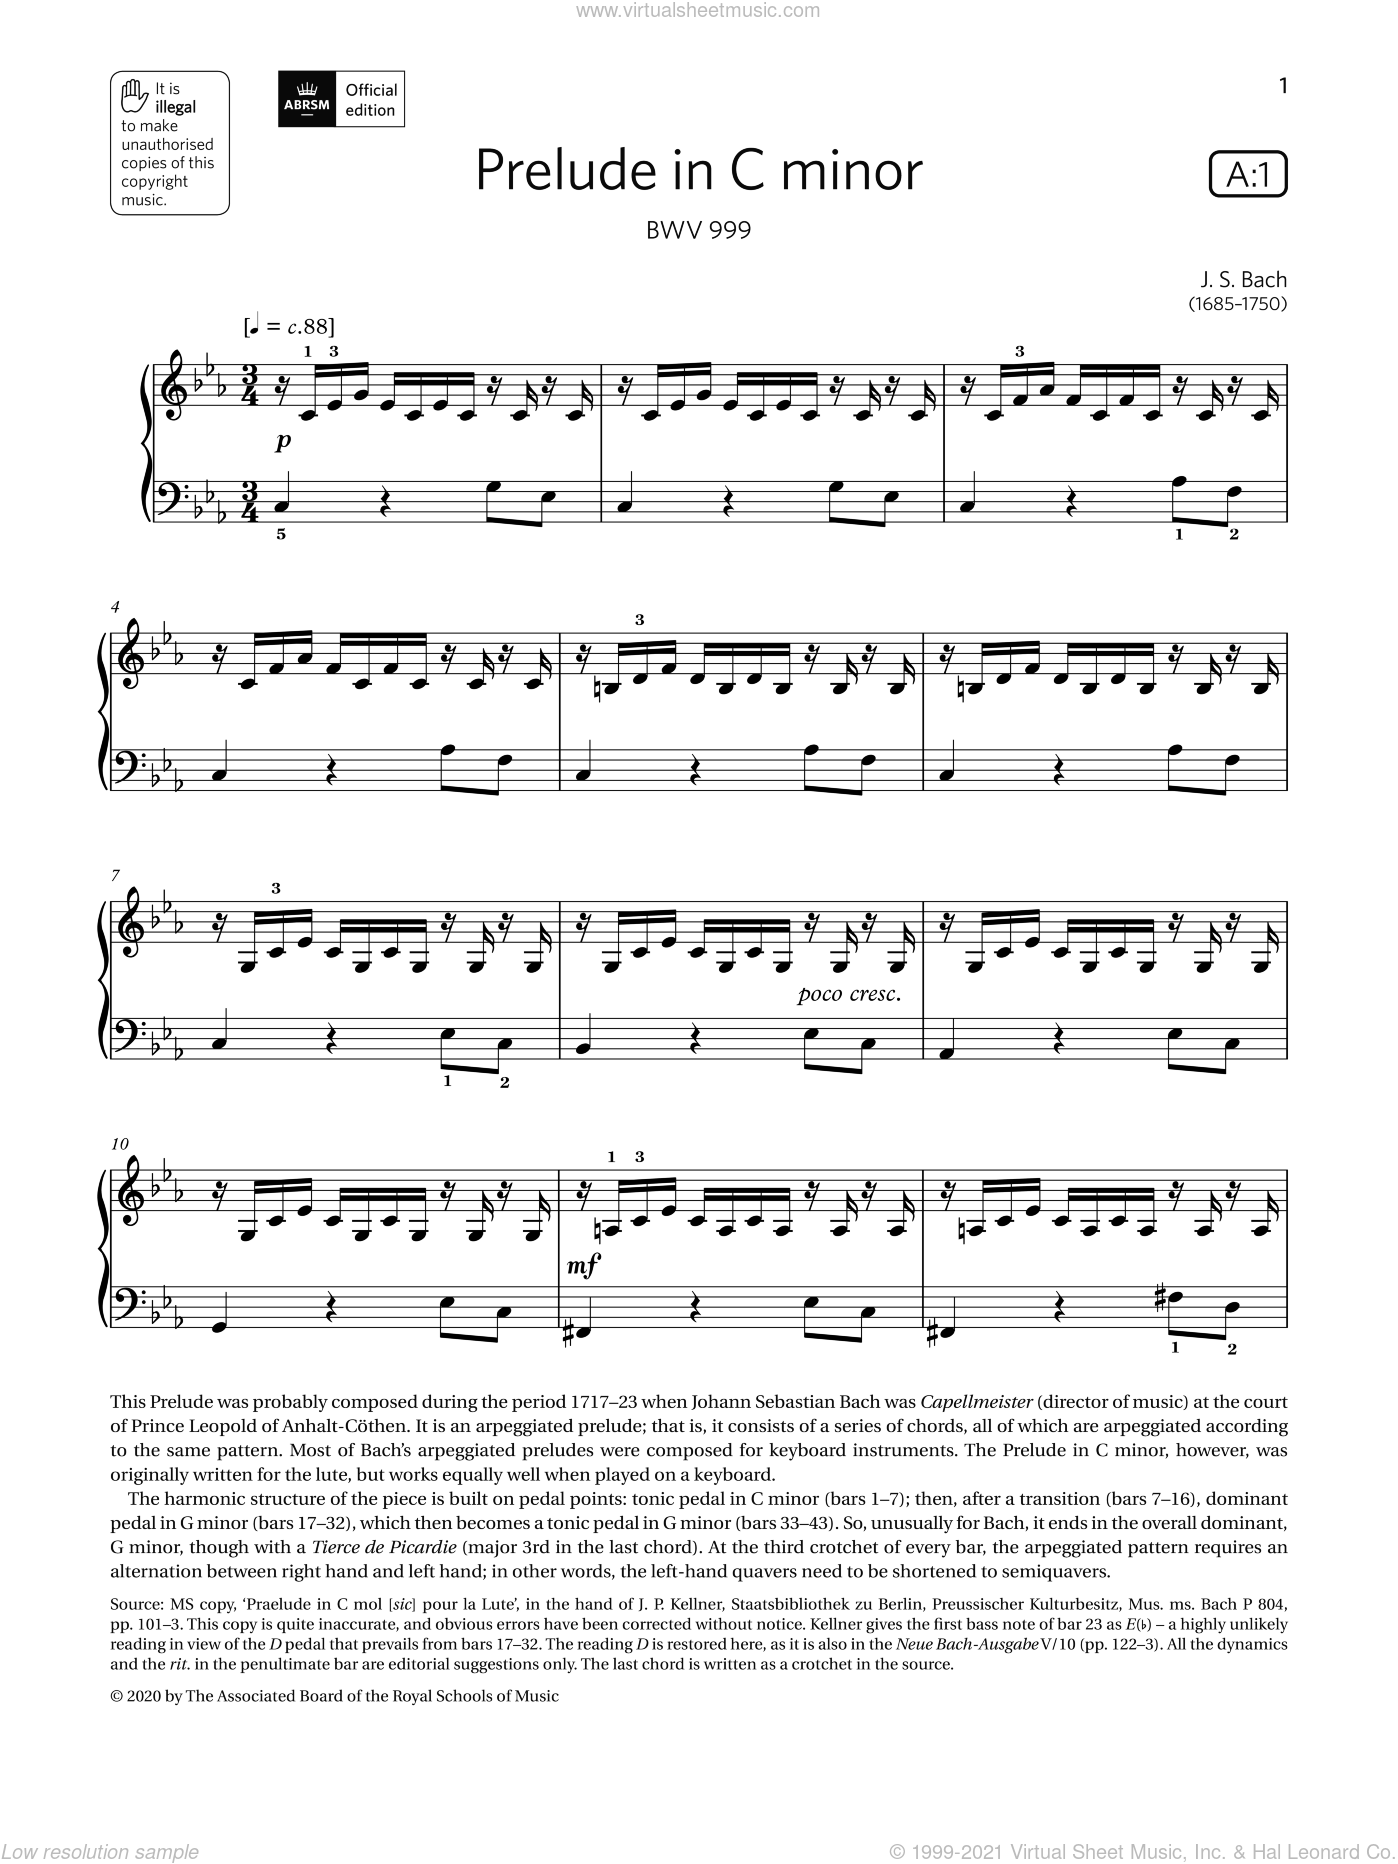 Bach - Prelude in C minor (Grade 4. list A1. from the ABRSM Piano Syllabus 2021 and 2022) sheet music for piano solo